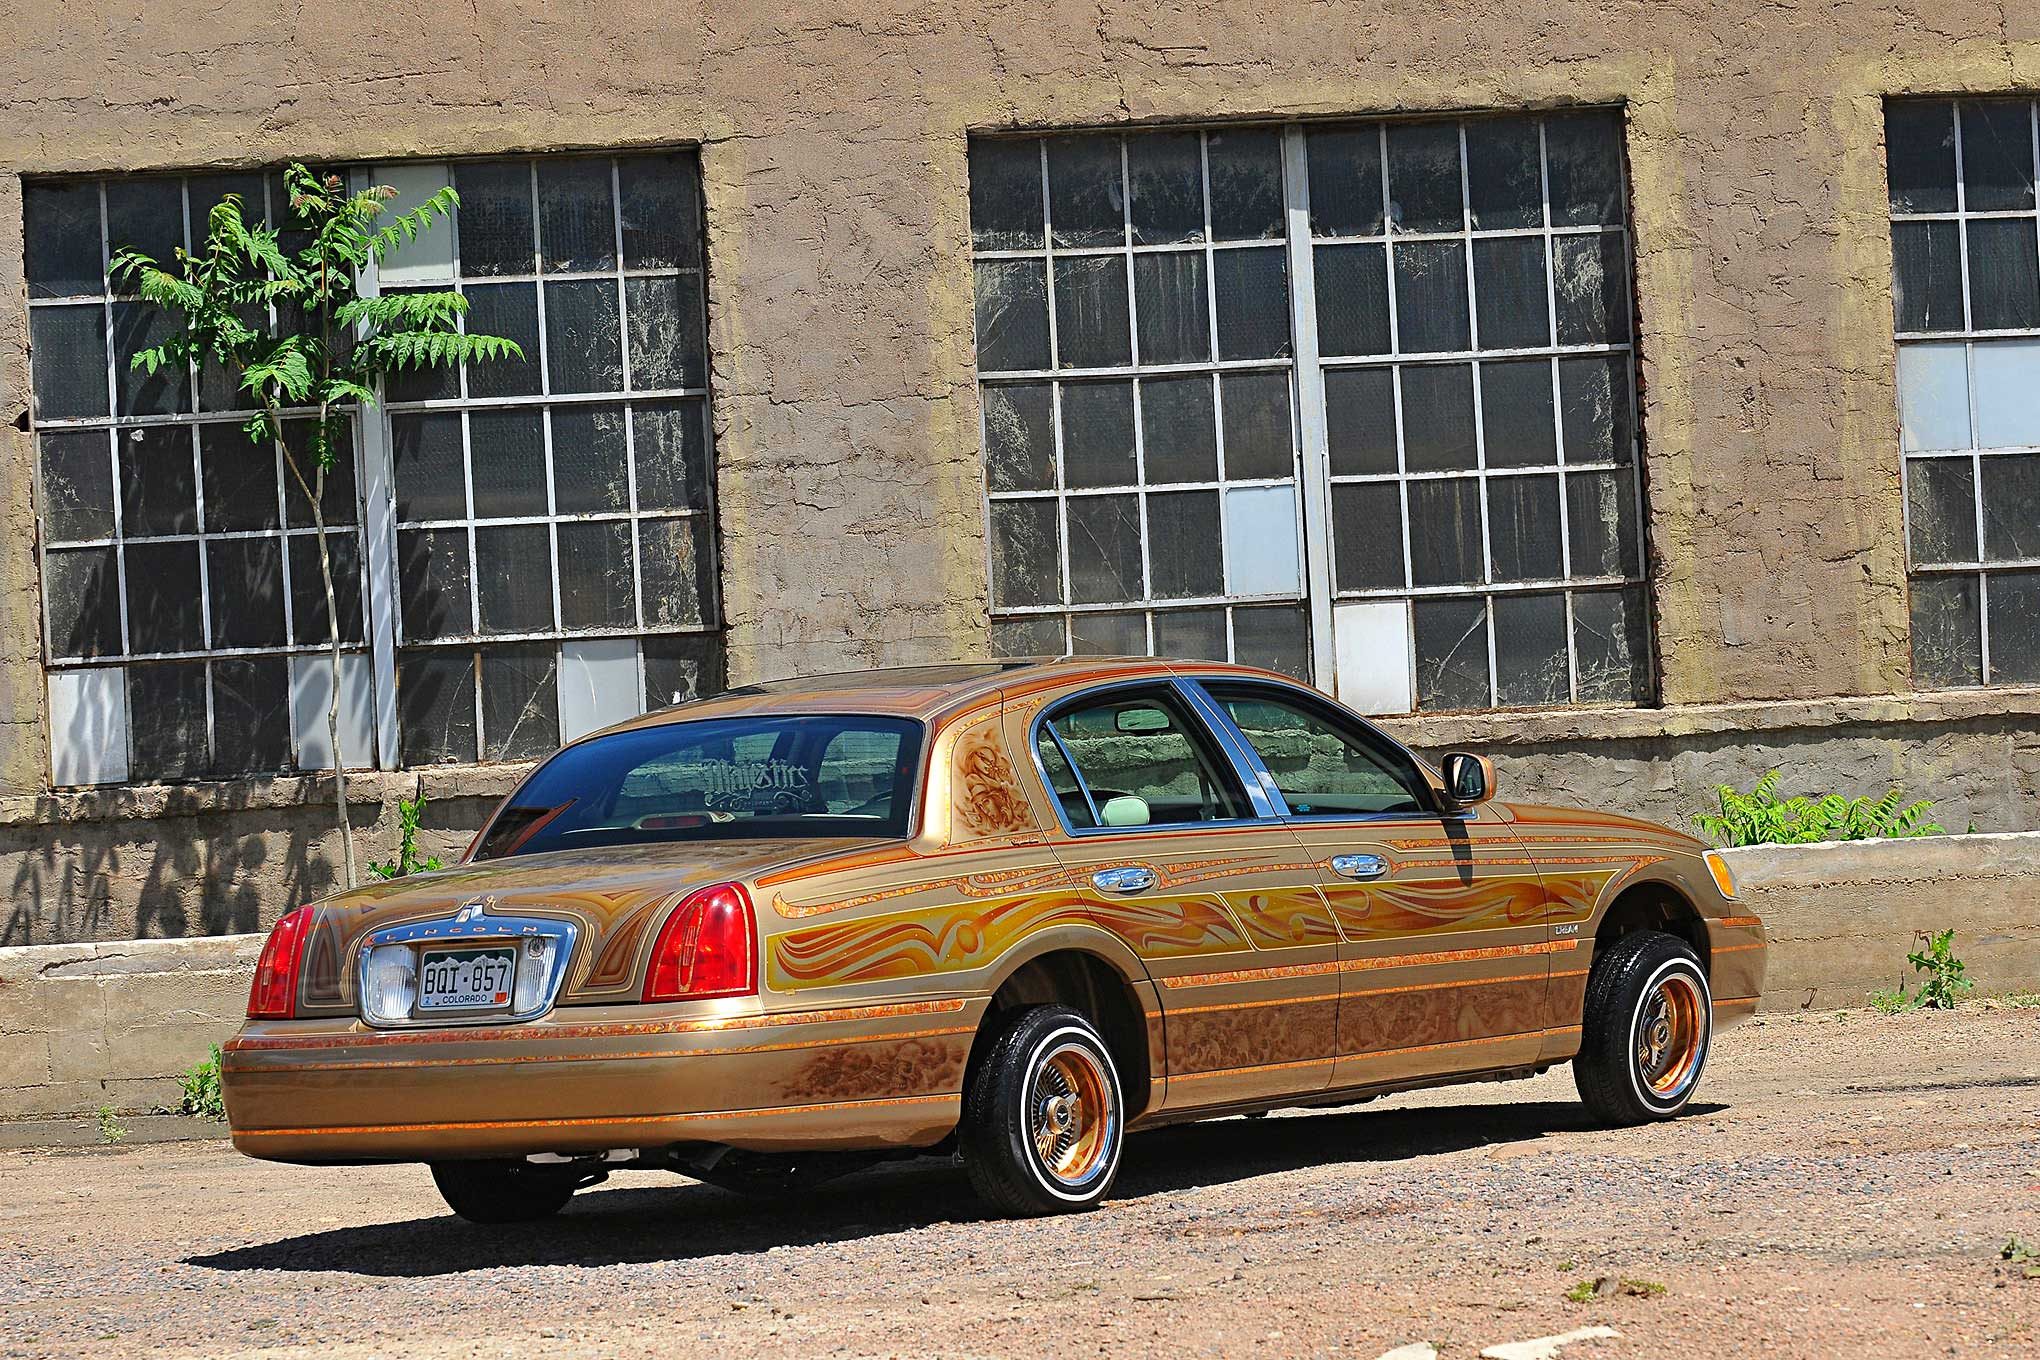 1998 Lincoln Town Car - Life's Golden on lincoln ls, 1998 lincoln limousine, 2007 cadillac seville car, 1998 lincoln stretch limo, mercury marauder, 1998 lincoln coupe, living out of your car, ford taurus, 1998 lincoln mark viii, ford expedition, lincoln township car, 1998 lincoln fuse box diagram, mercury grand marquis, my car, 1998 lincoln blackwood, 1998 lincoln aviator, mercedes-benz s-class, ford crown victoria police interceptor, lincoln navigator, lincoln lawyer car, chrysler town car, ford explorer, lincoln mkt, 1998 lincoln cartier, 1998 lincoln mks, cadillac dts, 01 town car, 1998 lincoln suv, 1998 lincoln mk viii, 1998 lincoln continental, lincoln mkz, ford crown victoria, cadillac escalade, lincoln mkx, lincoln mks, 1998 lincoln ls, lincoln continental,